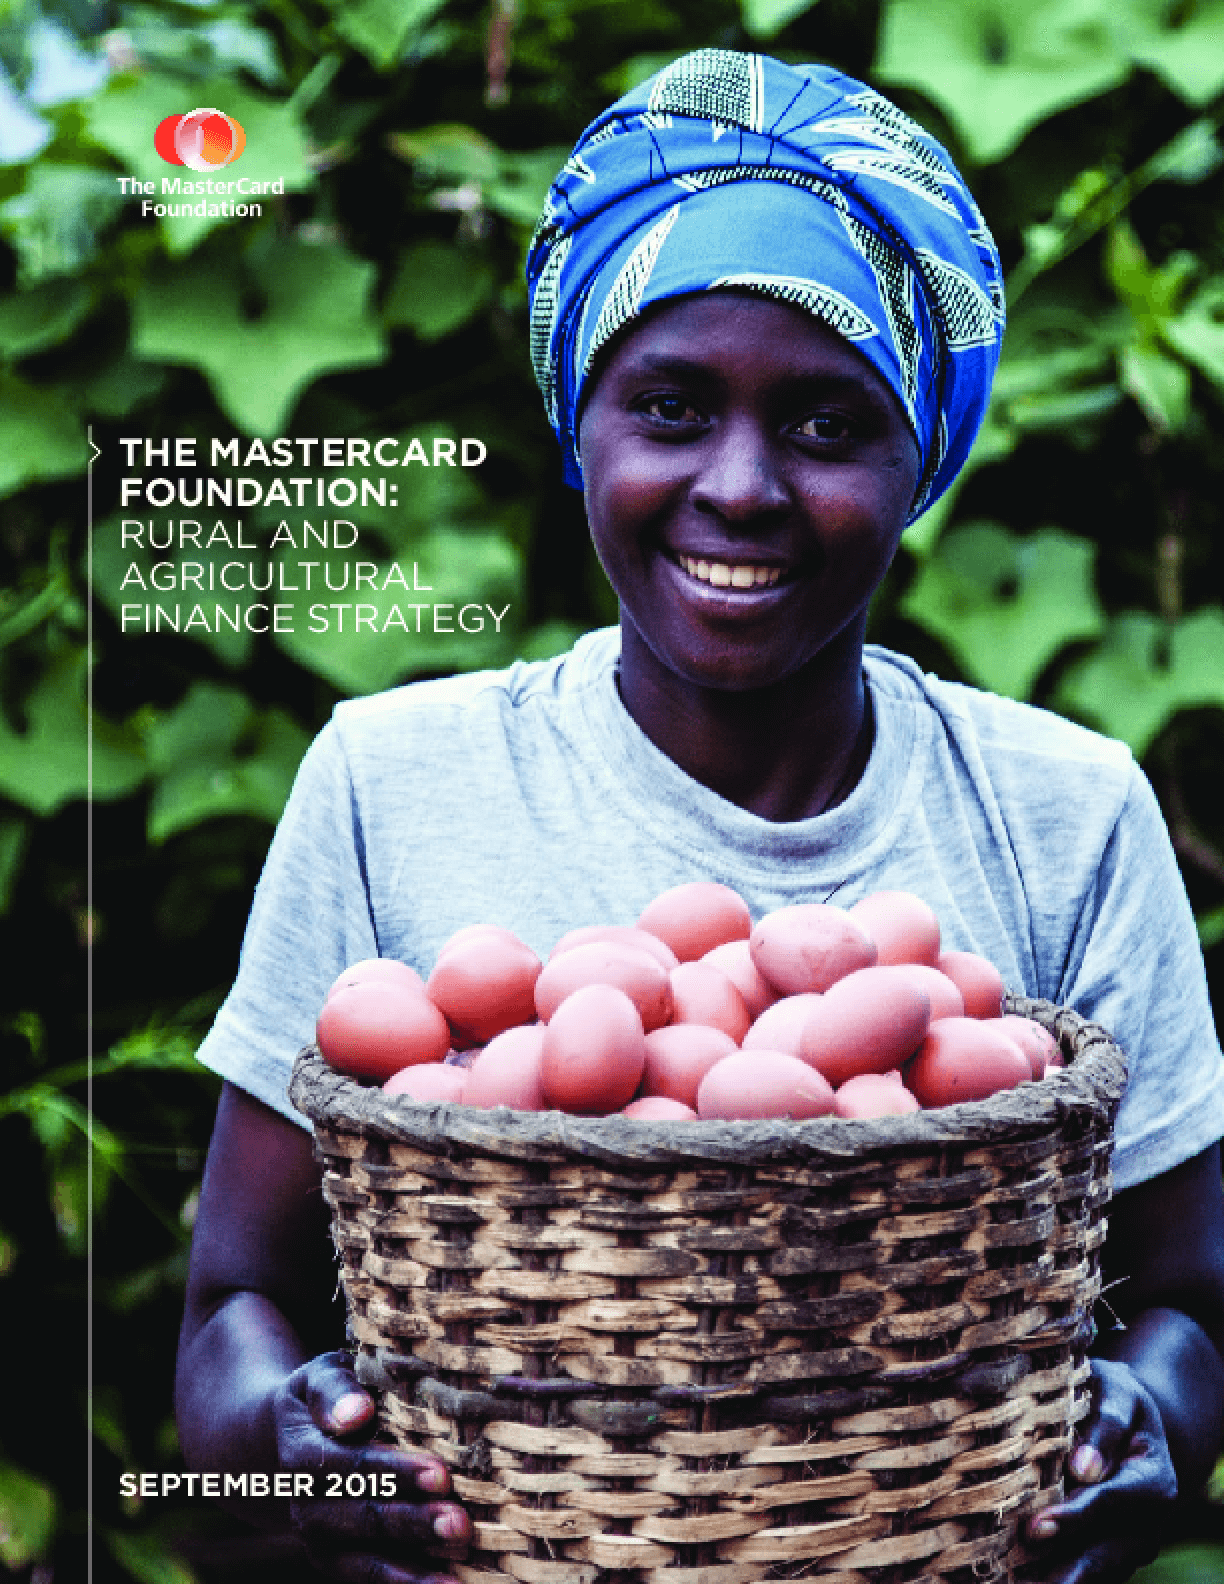 The MasterCard Foundation: Rural and Agricultural Finance Strategy